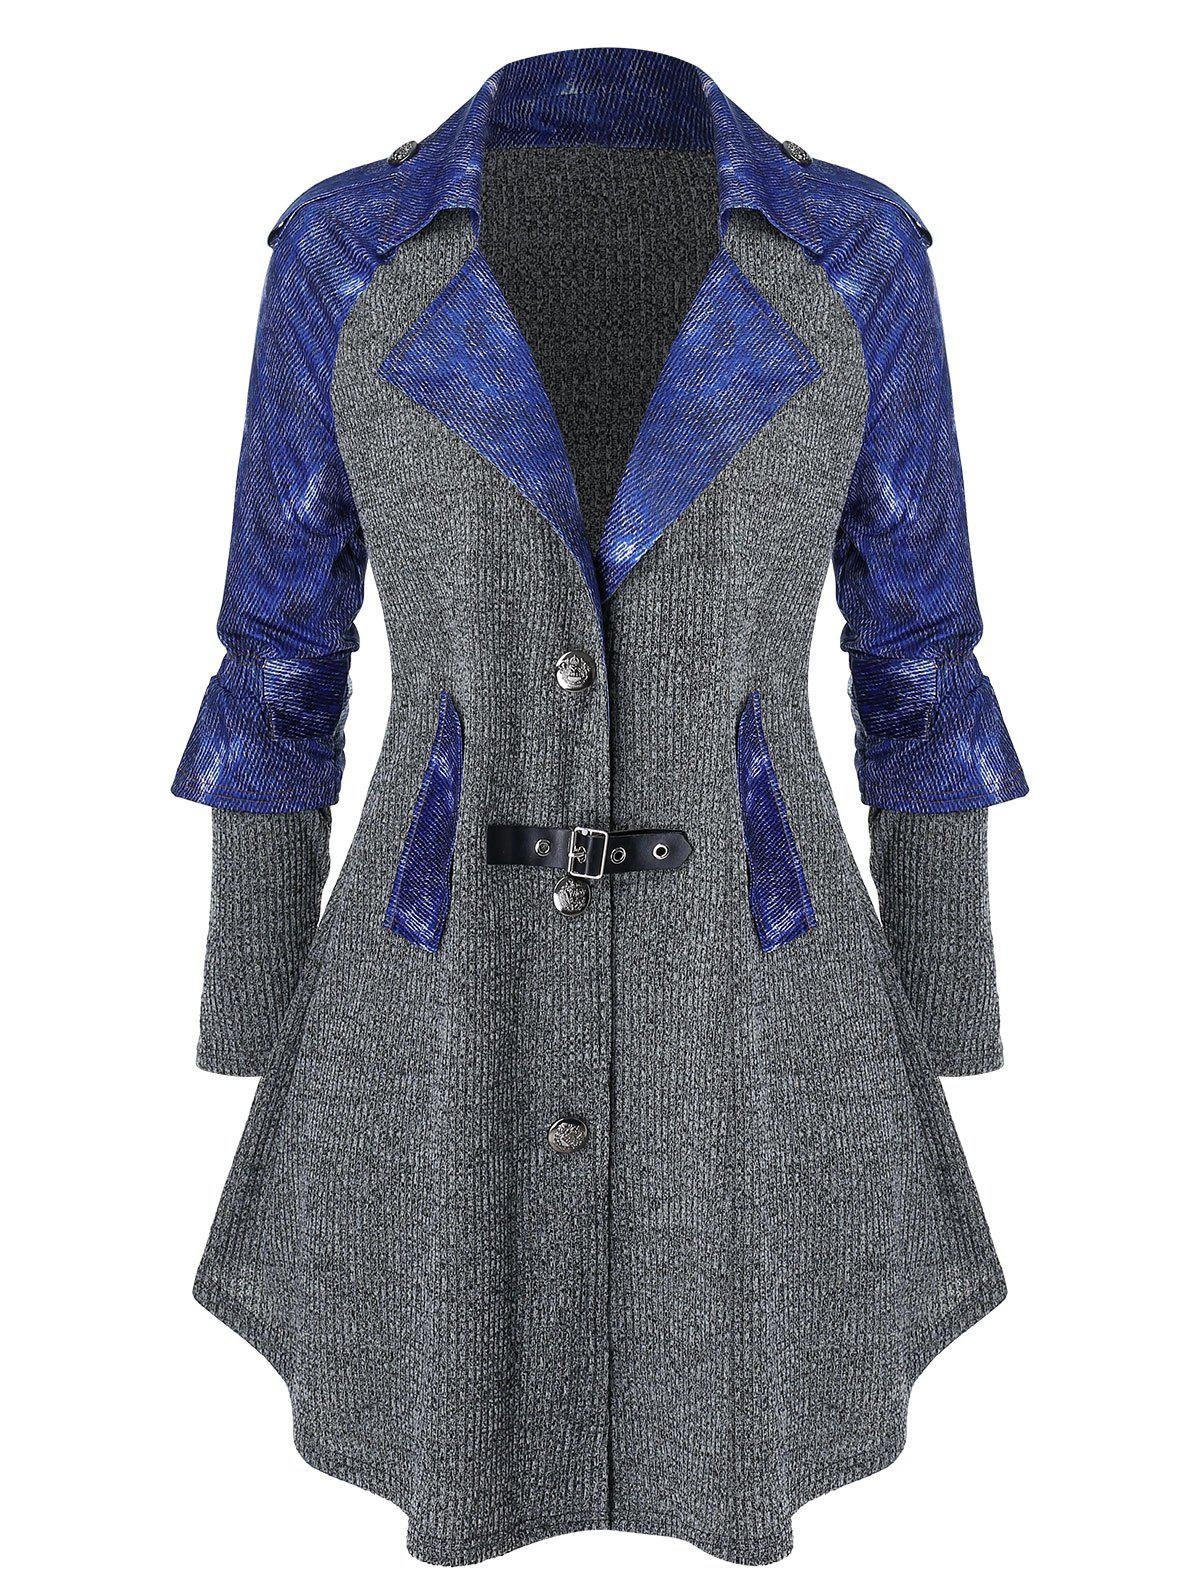 Plus Size Raglan Sleeve Contrast Denim Marled Knit Coat - CARBON GRAY 3X